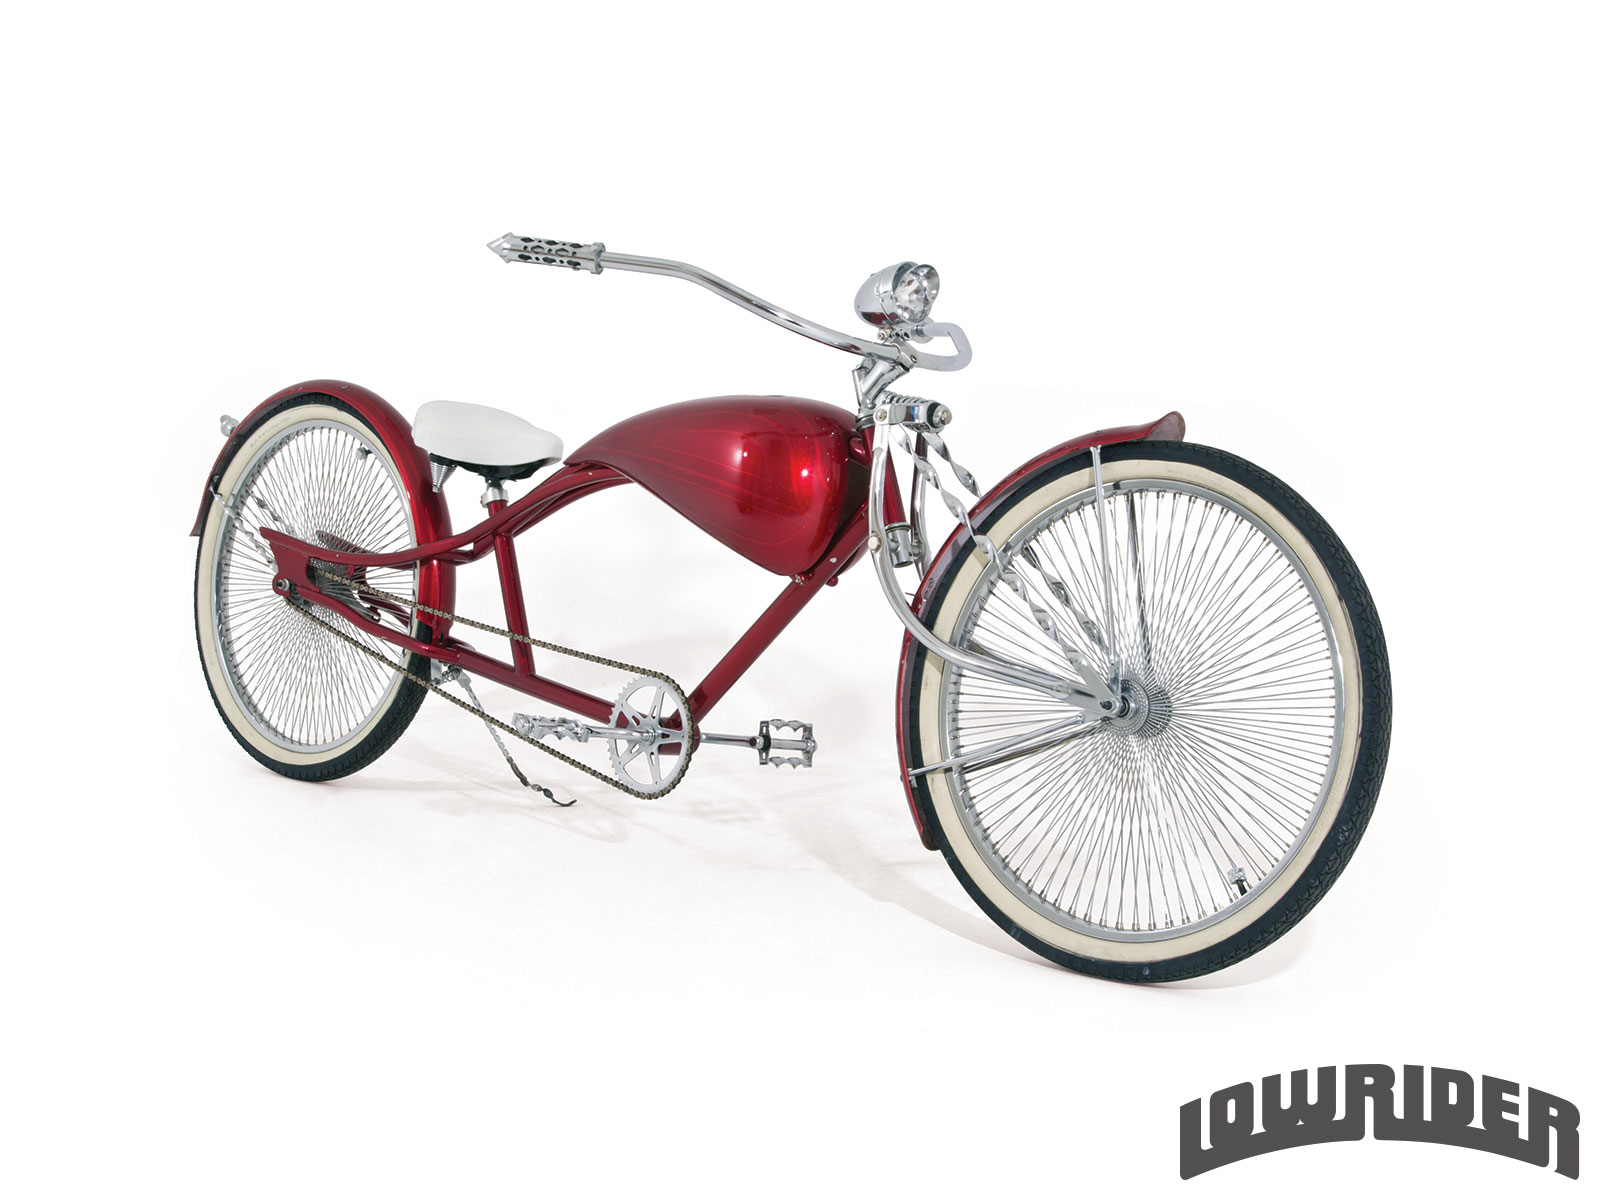 Stretched Beach Cruiser - Lowrider Magazine